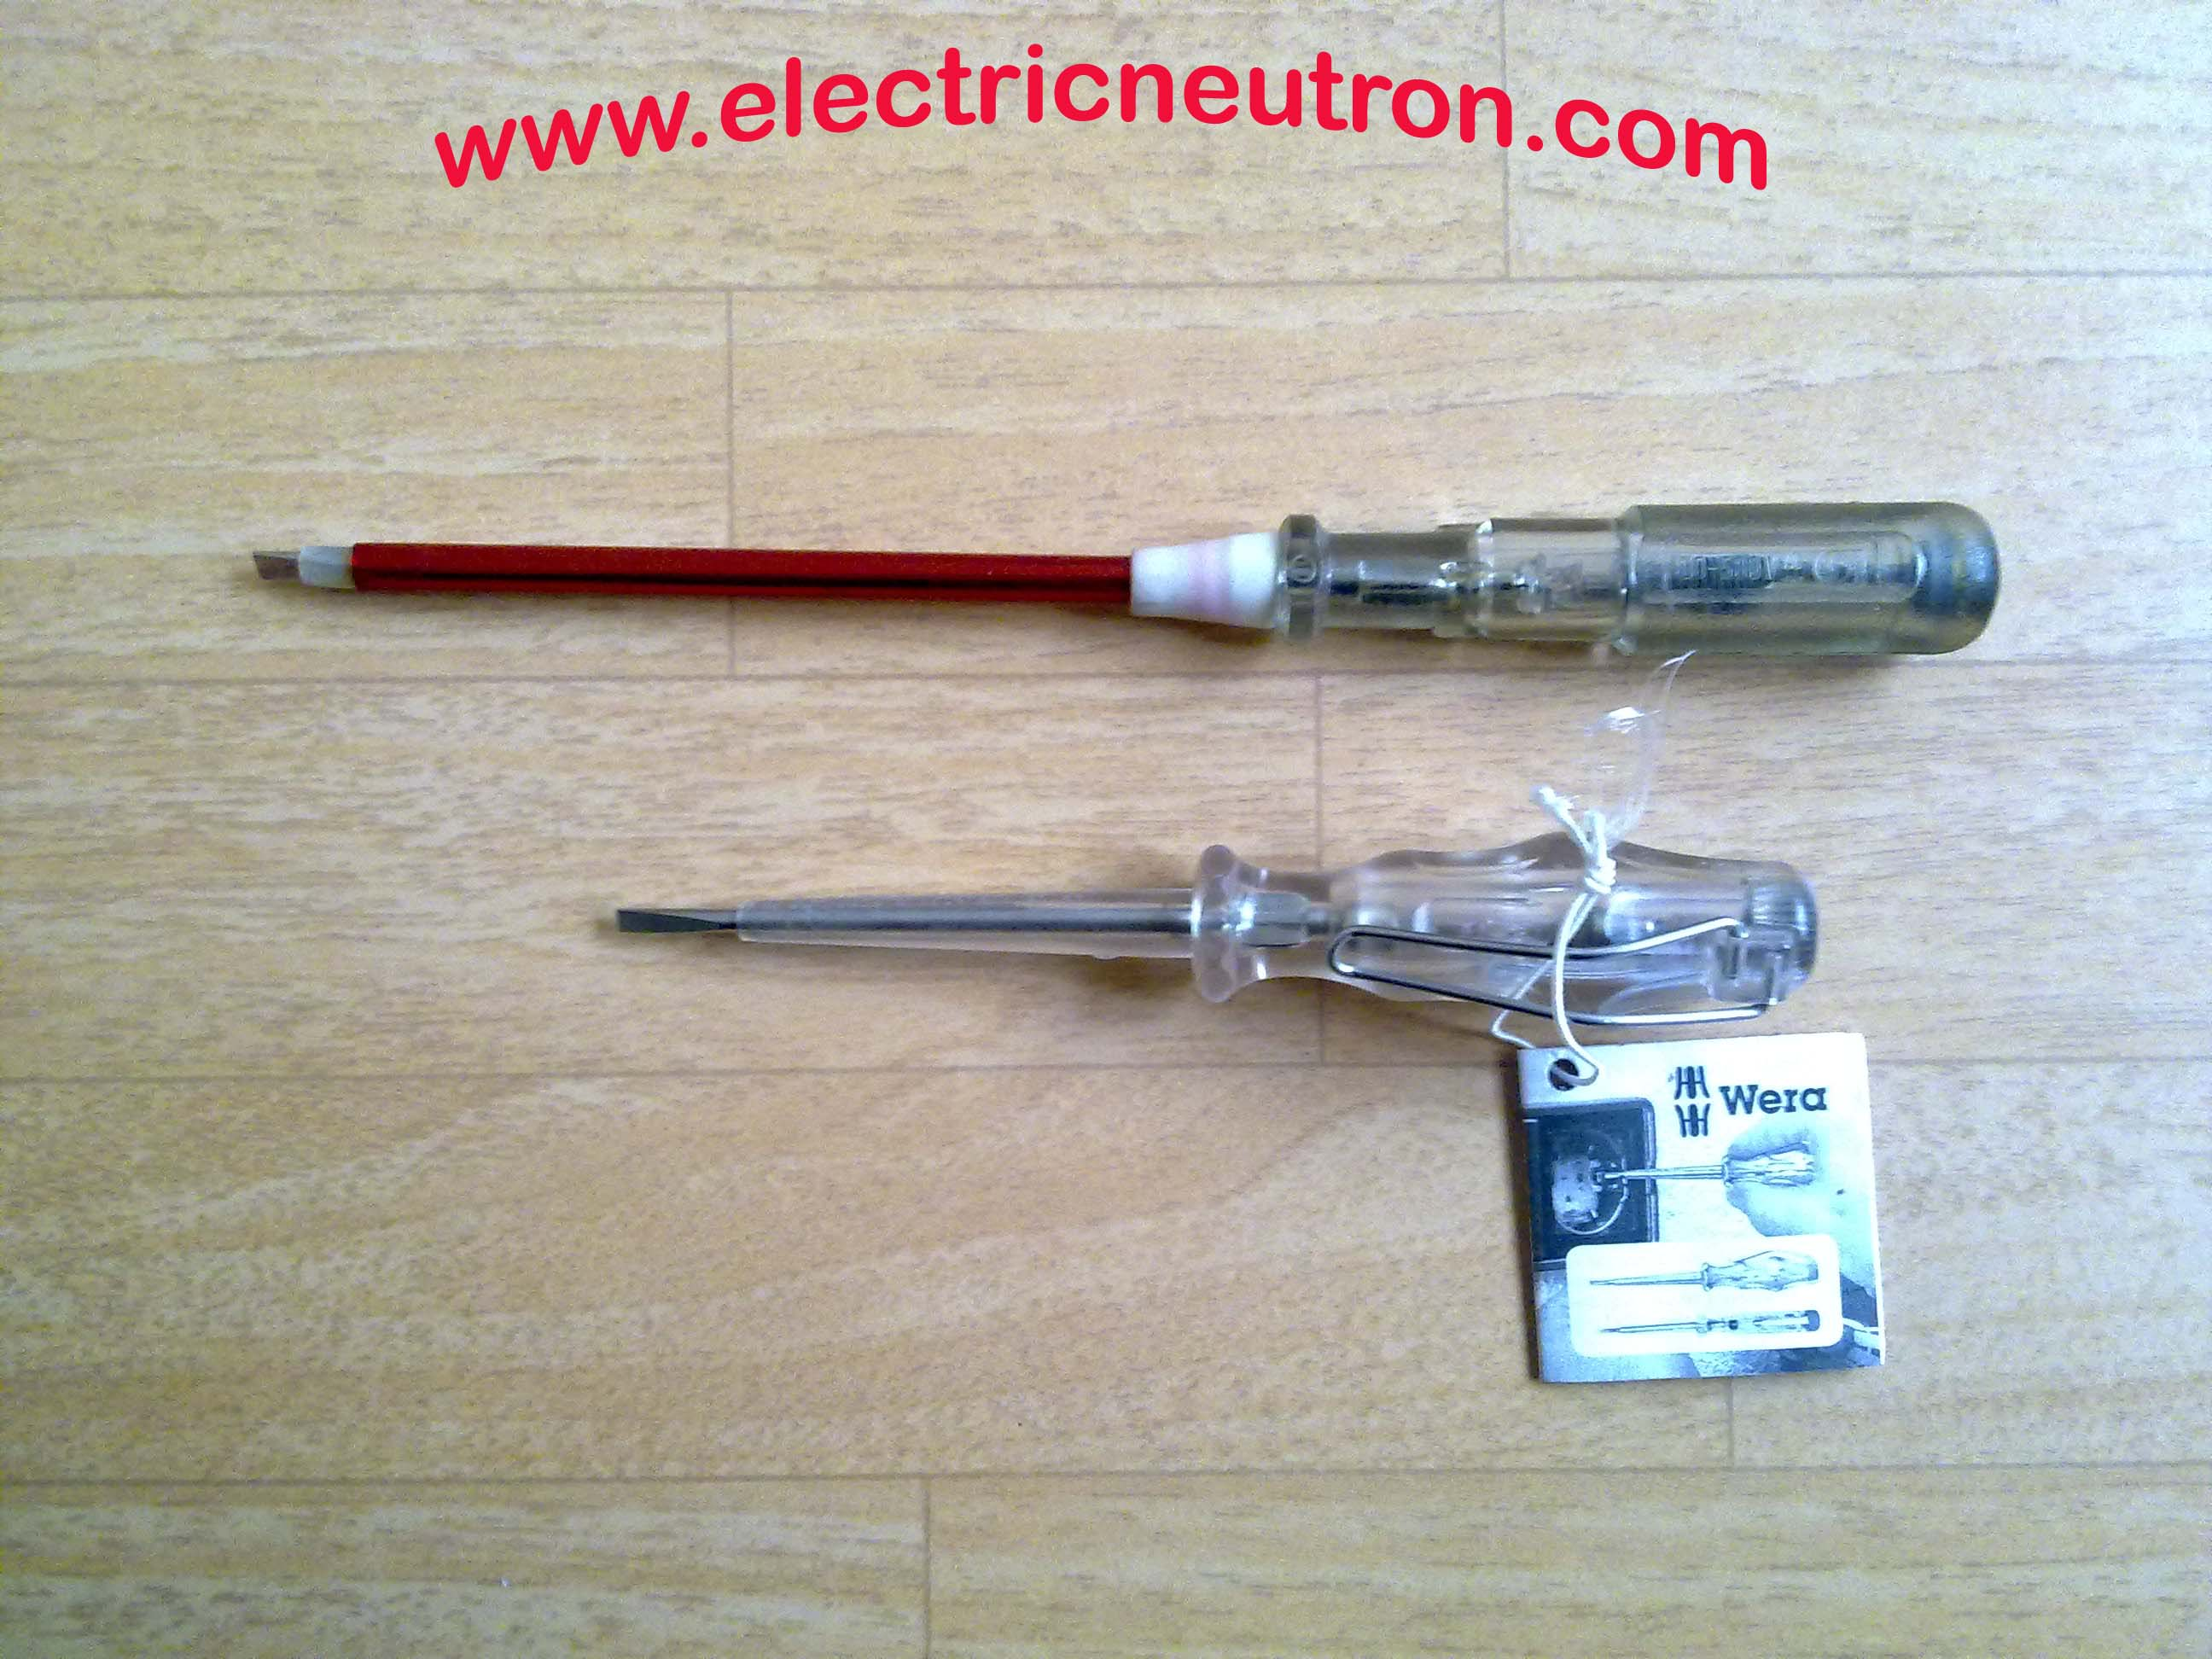 Test Pen Voltage Tester Electrical Engineering Centre Phillips Wiring Diagrams For